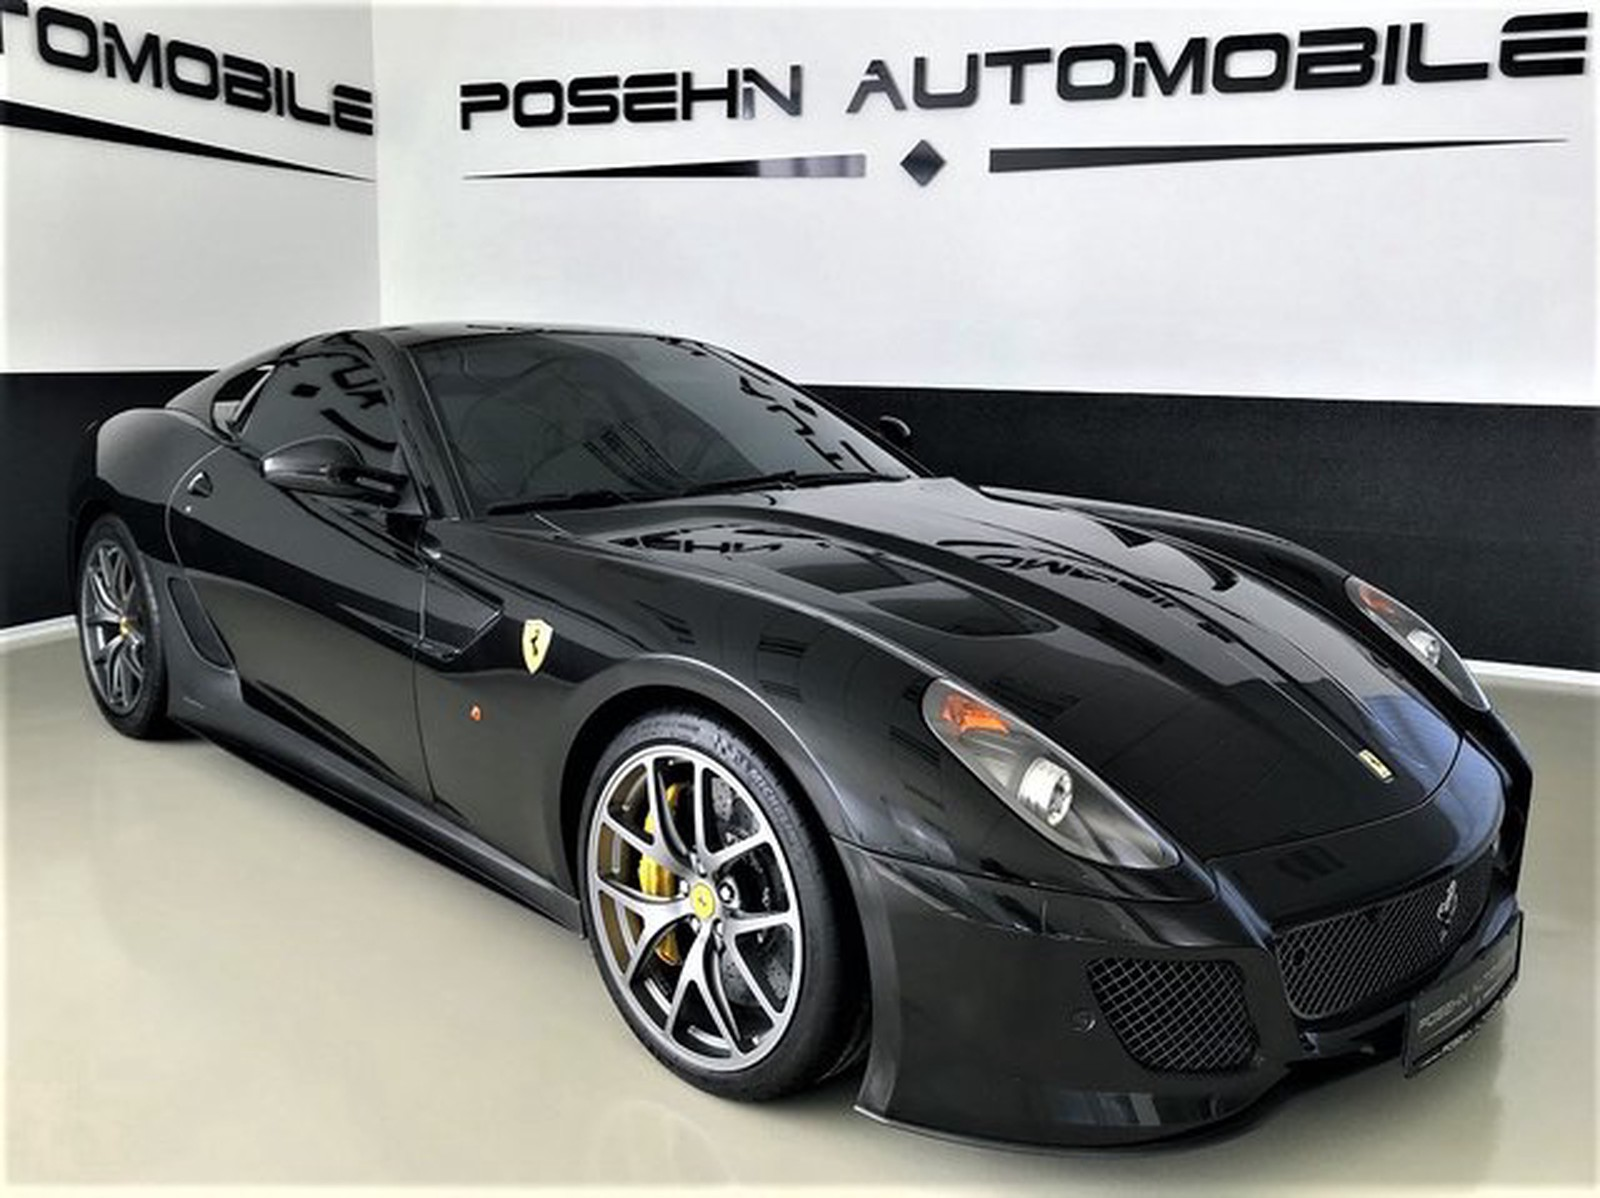 Ferrari 599 Gtb Fiorano F1 Gto Umbau Carbon Ceramic Used Buy In Hechingen Bechtoldsweiler Price 123750 Eur Int Nr 1564 Sold